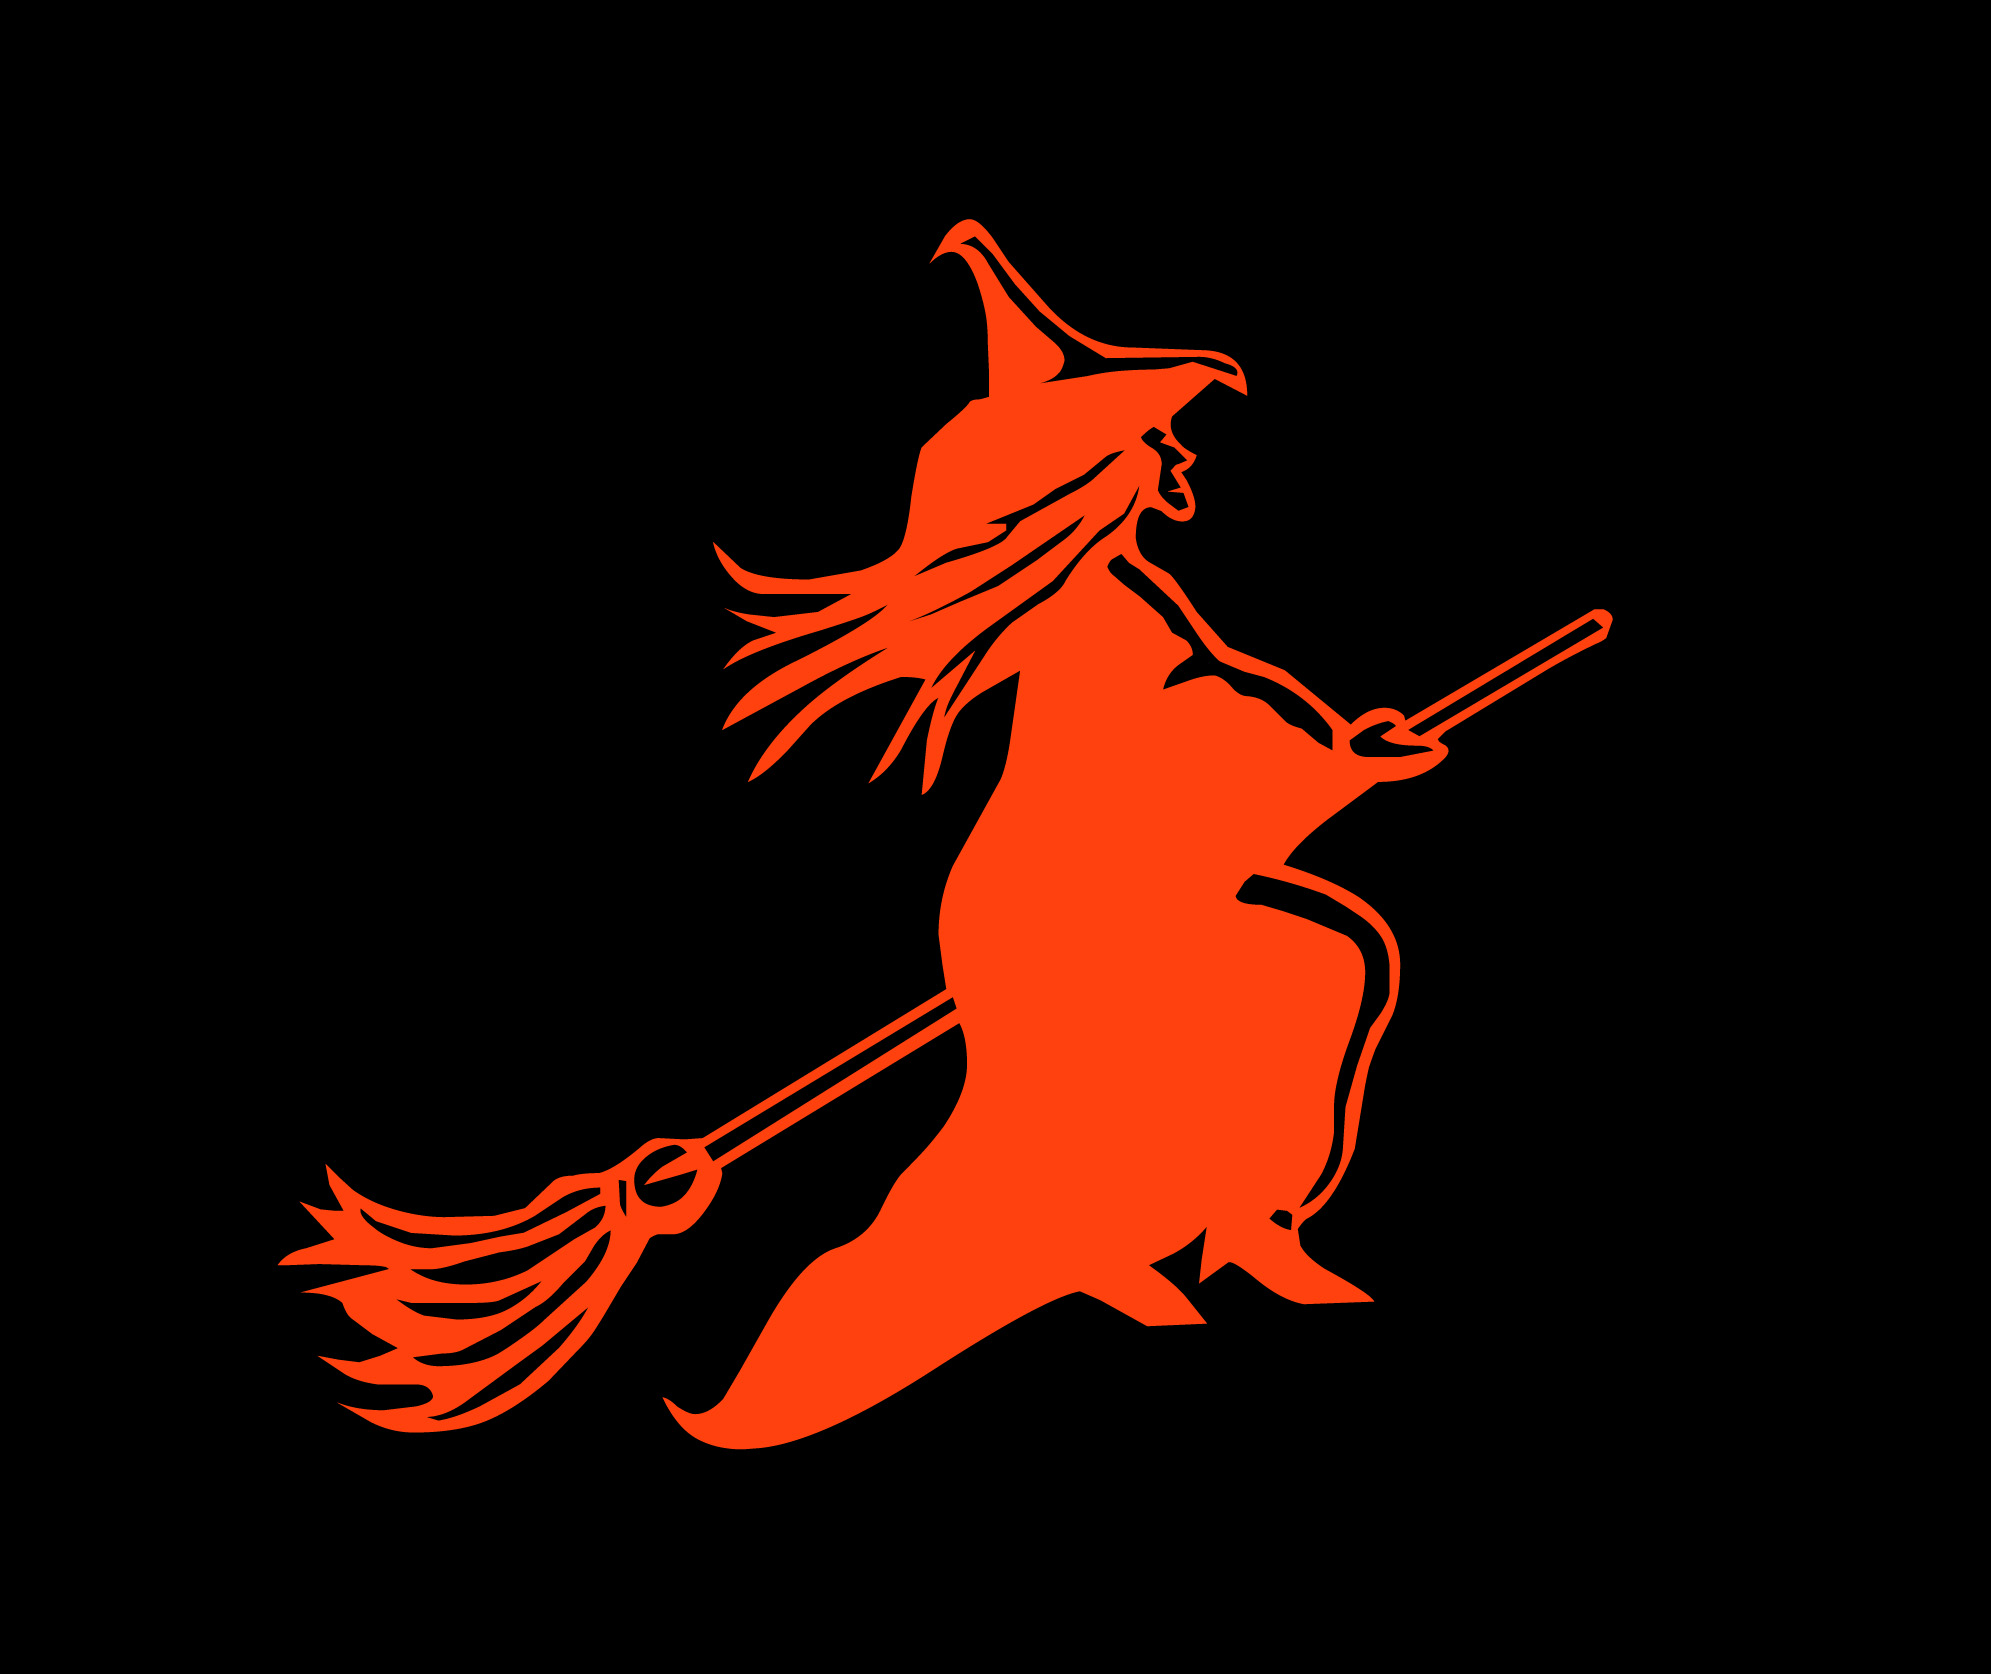 Image of red witch on a broom.